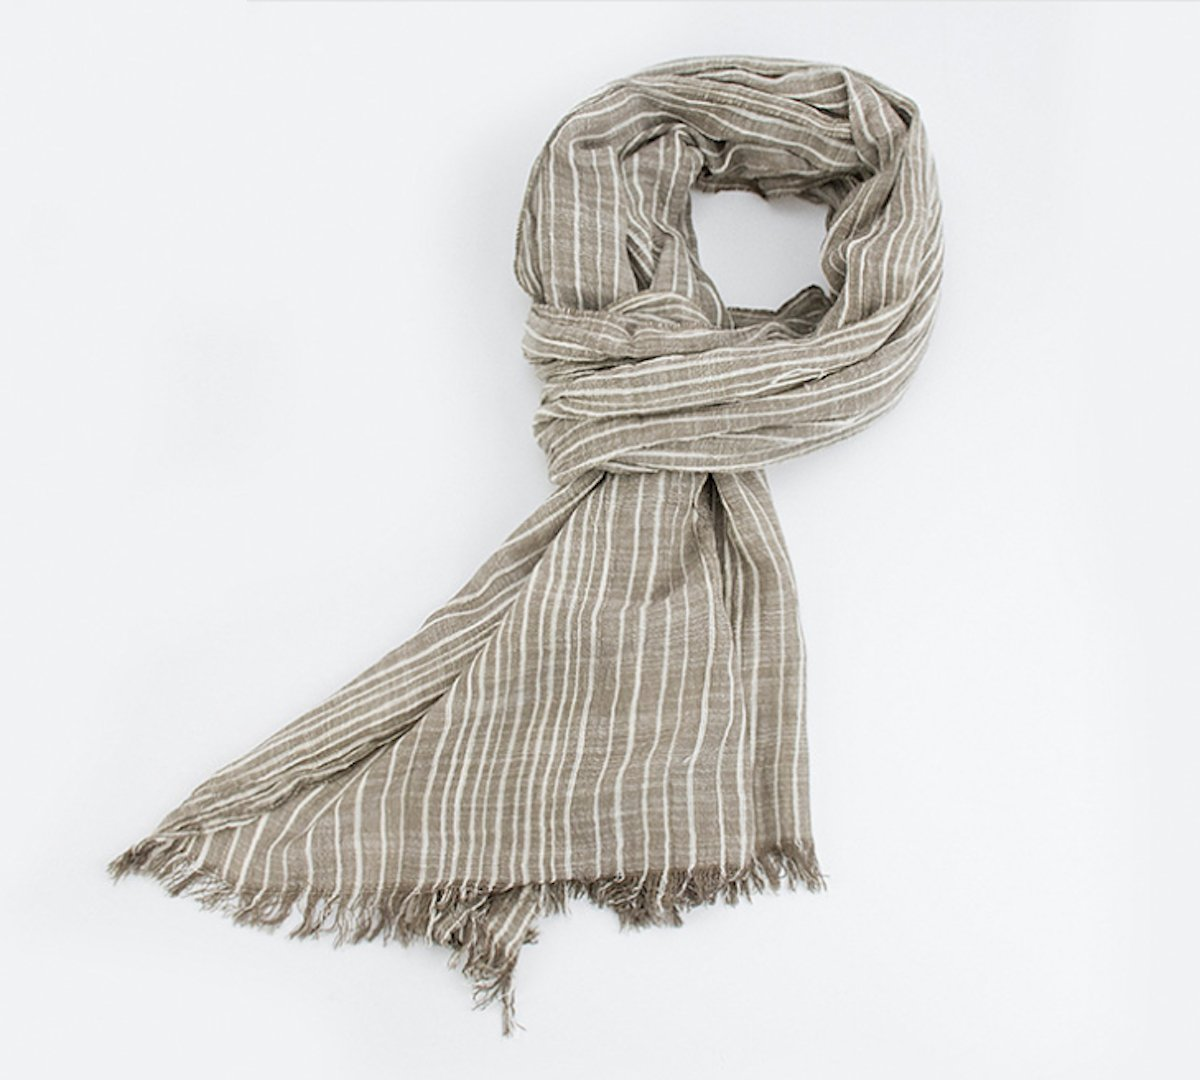 Cotton Scarf Shawl Wrap Soft Lightweight Scarves And Wraps For Men And Women. (Beige cream) by Jeelow (Image #6)